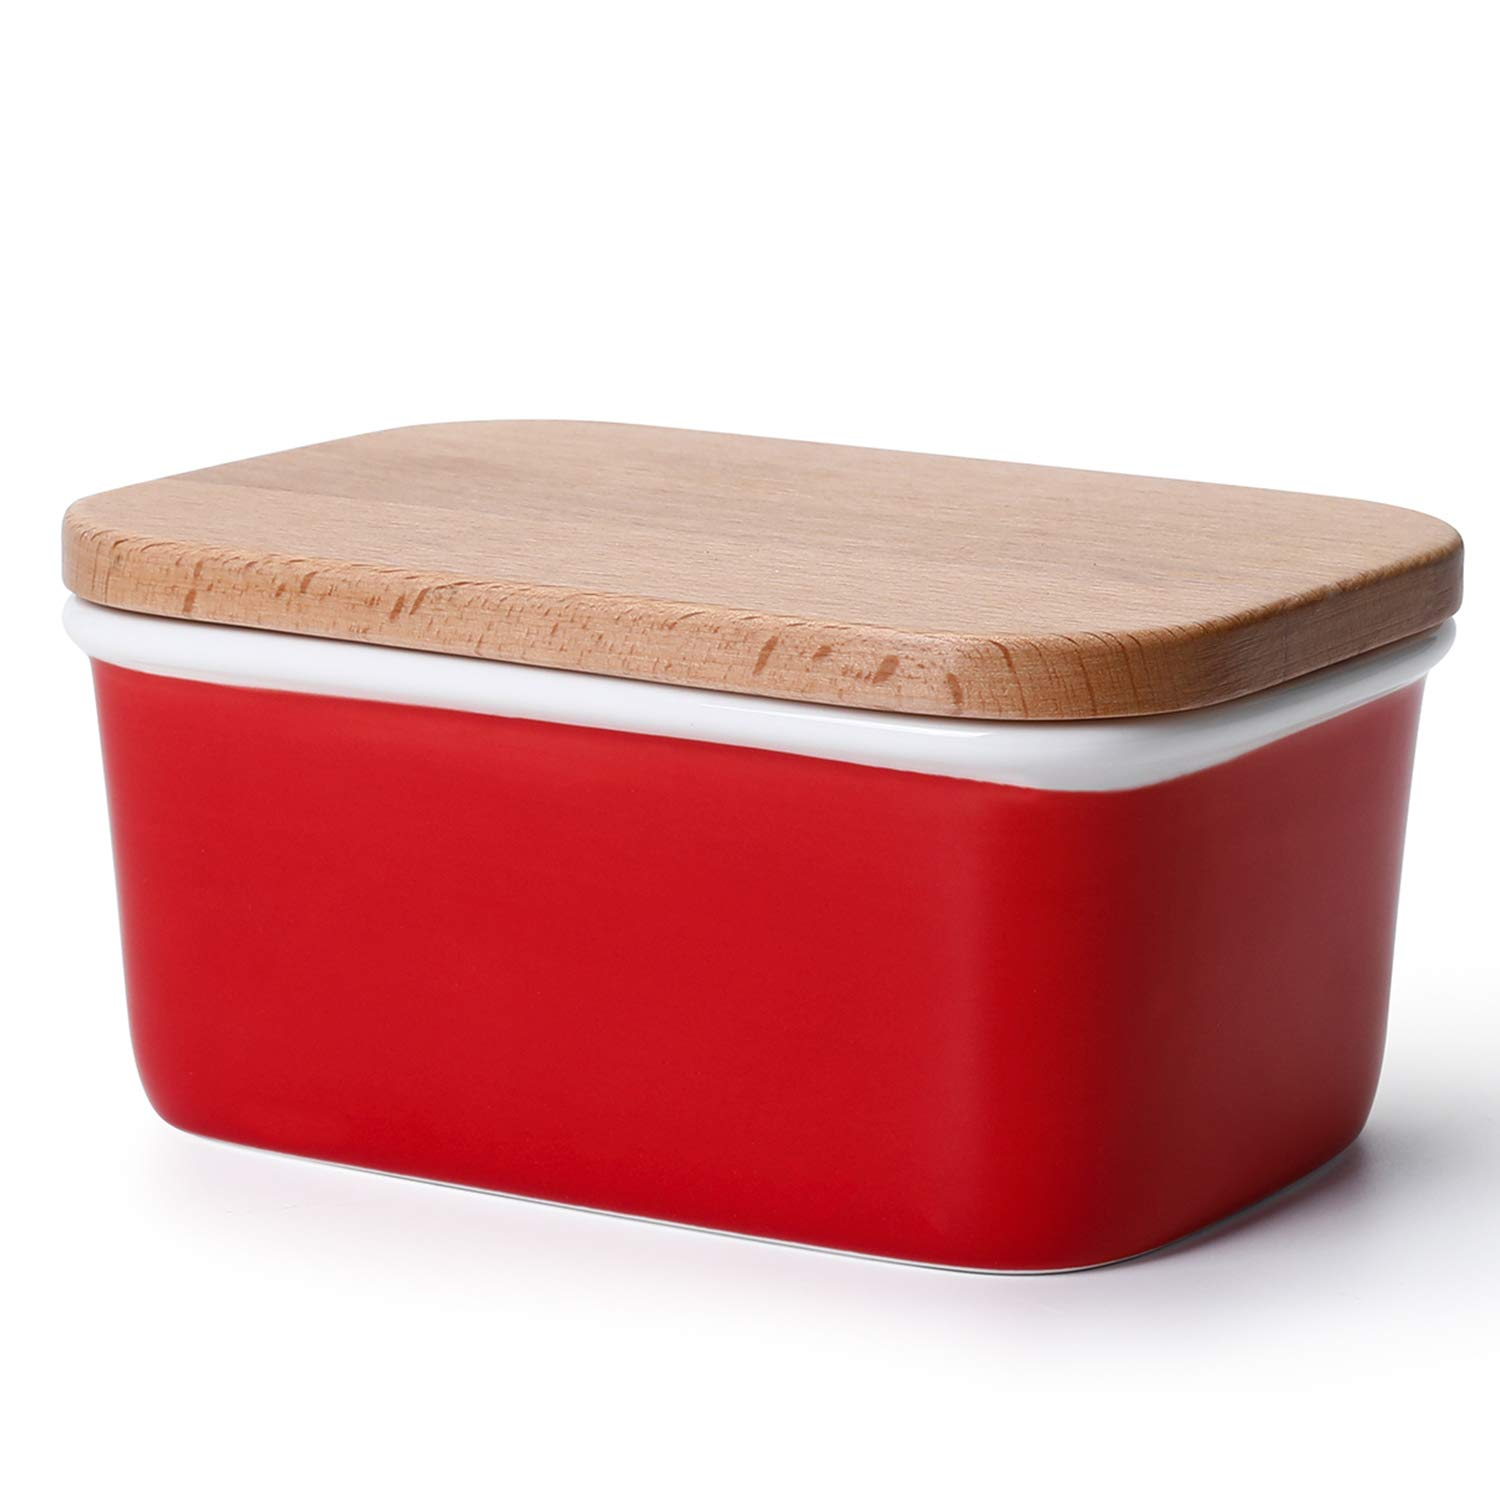 Sweese 301.104 Large Butter Dish - Porcelain Keeper with Beech Wooden Lid, Perfect for 2 Sticks of Butter, Red